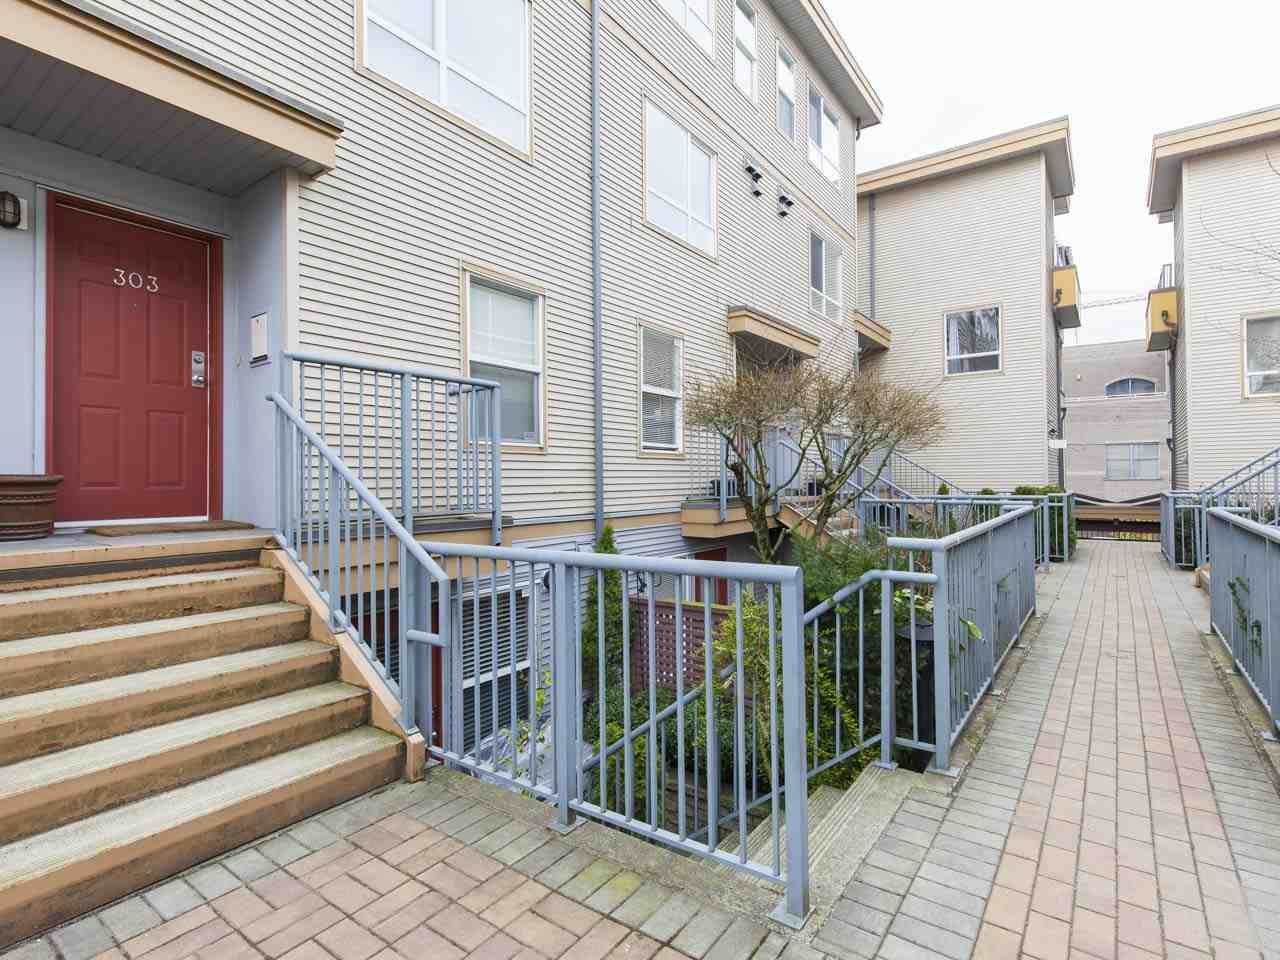 """Main Photo: 303 2688 WATSON Street in Vancouver: Mount Pleasant VE Townhouse for sale in """"Tala Vera"""" (Vancouver East)  : MLS®# R2152269"""